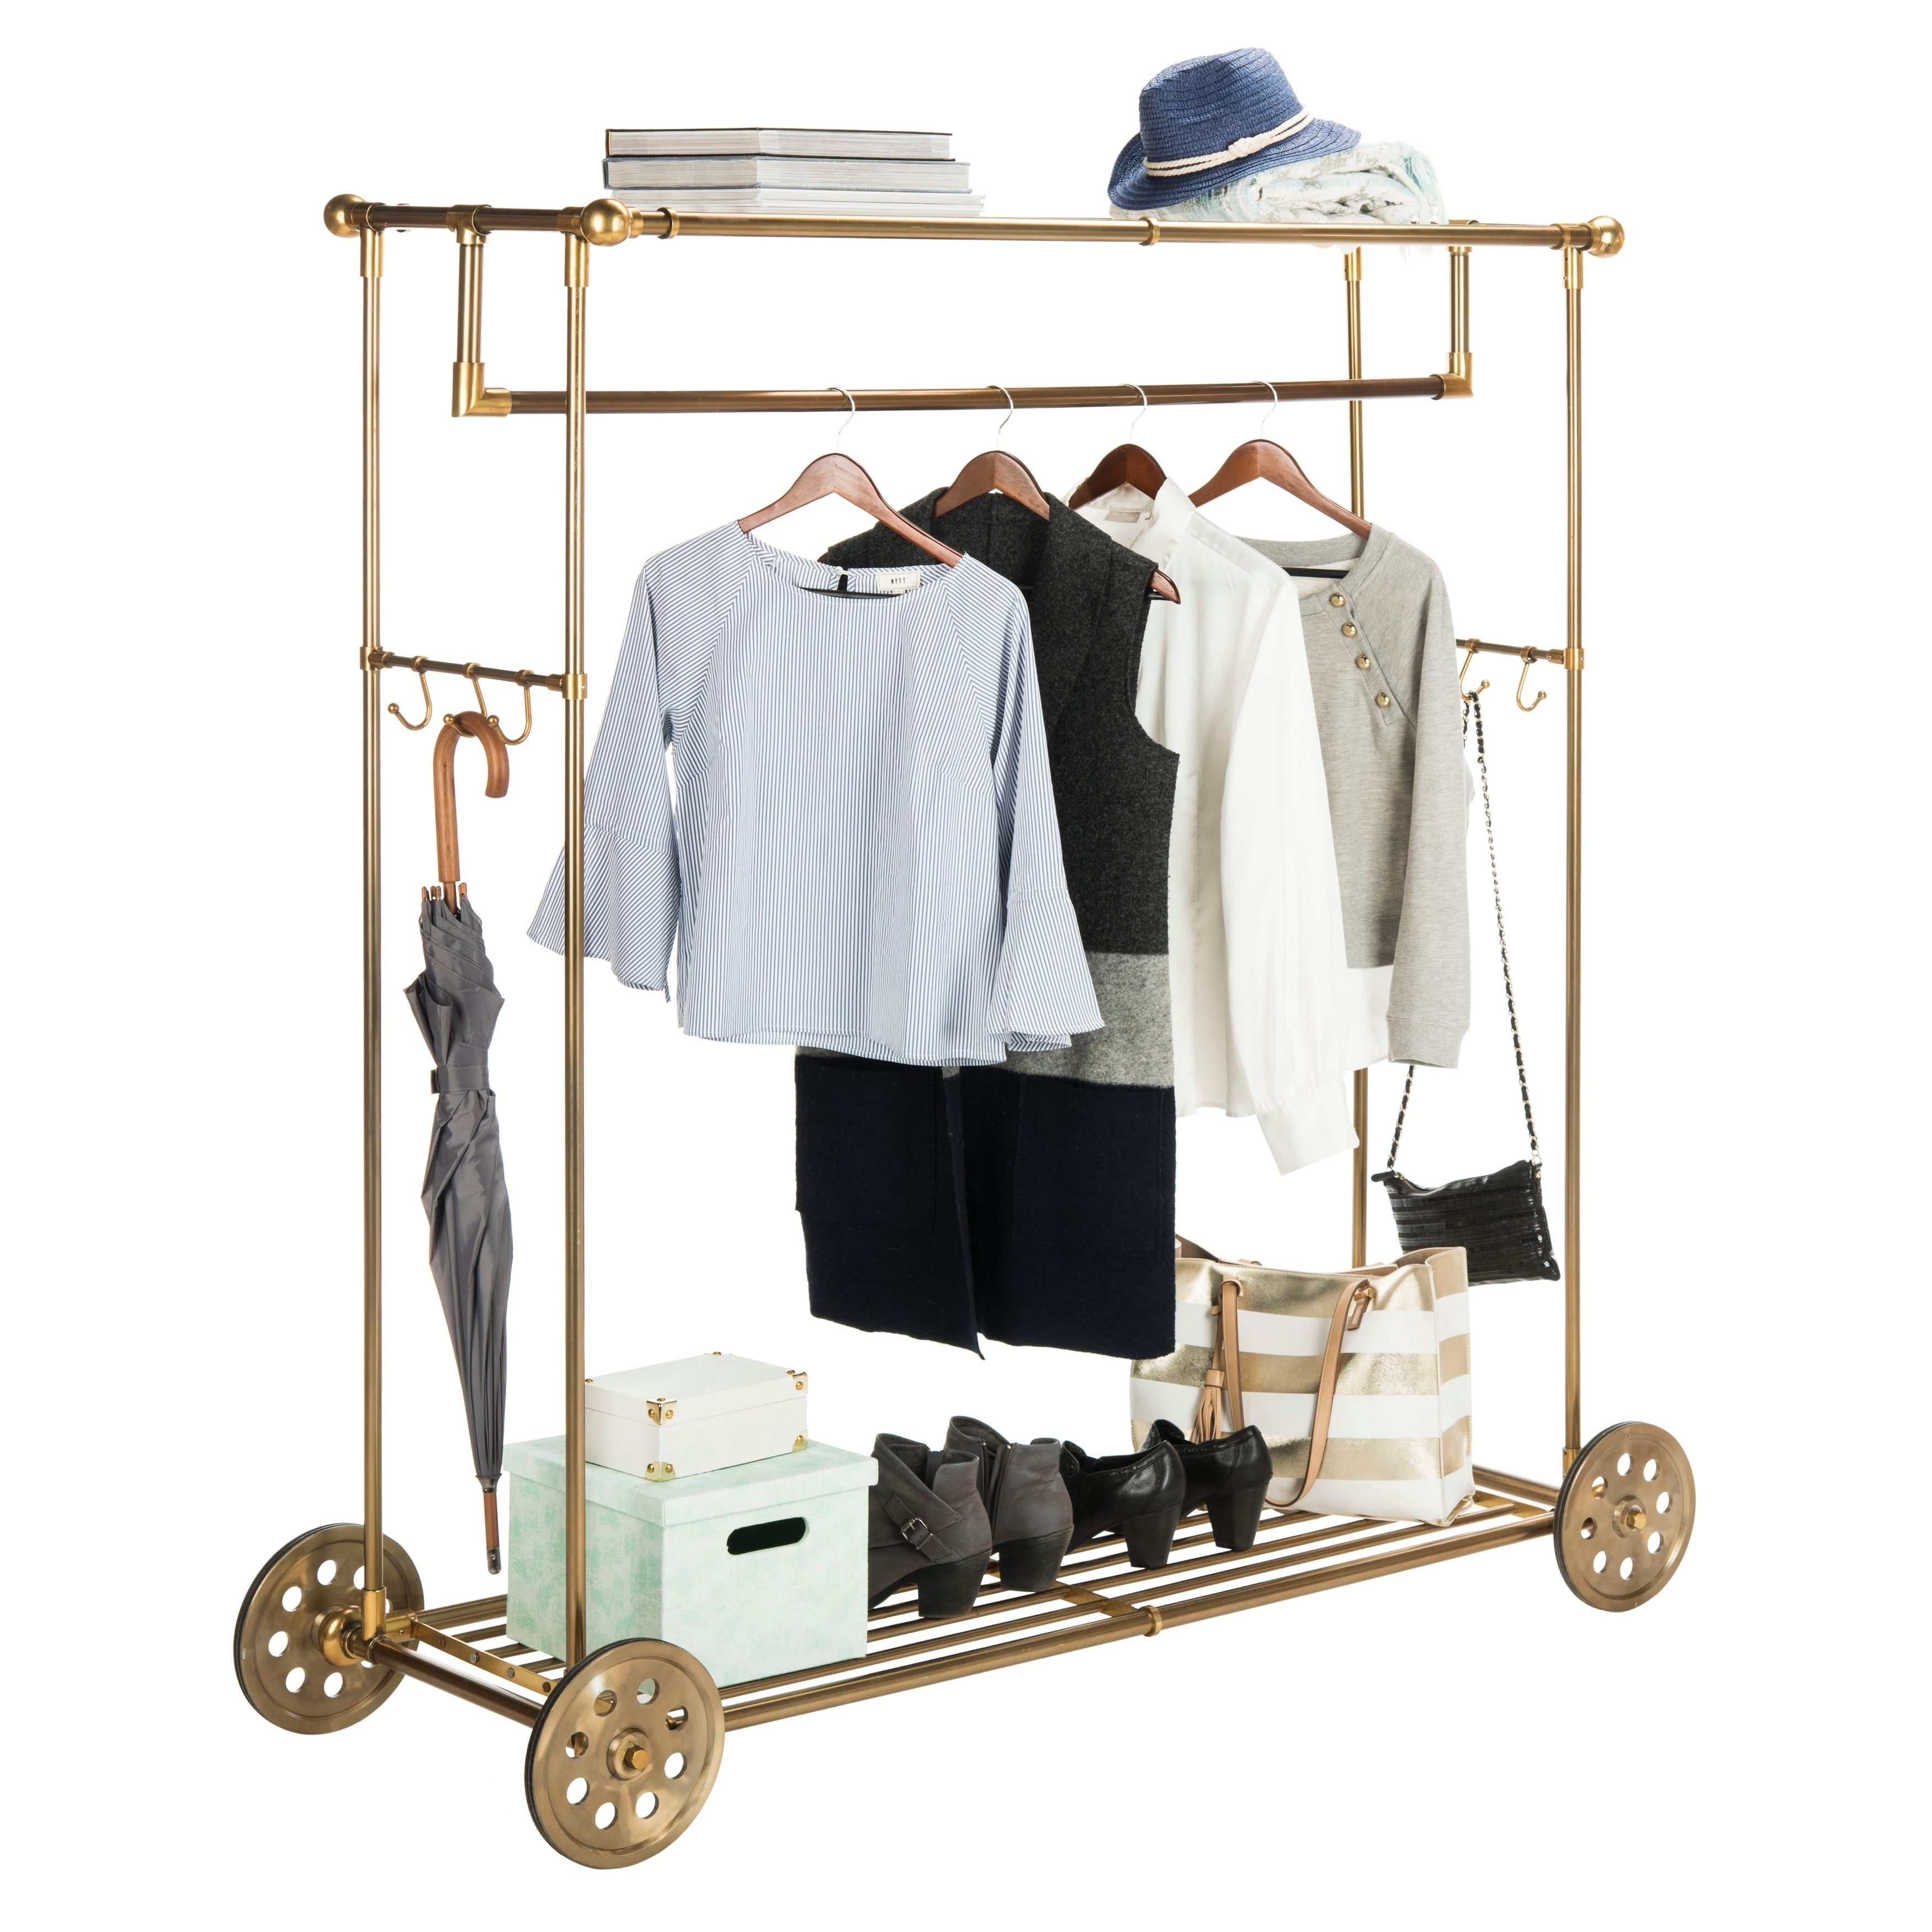 luggage double metal rack rail z rolling guides garment clothes finnhomy find shopping get adjustable quotations hanging with cheap shoe